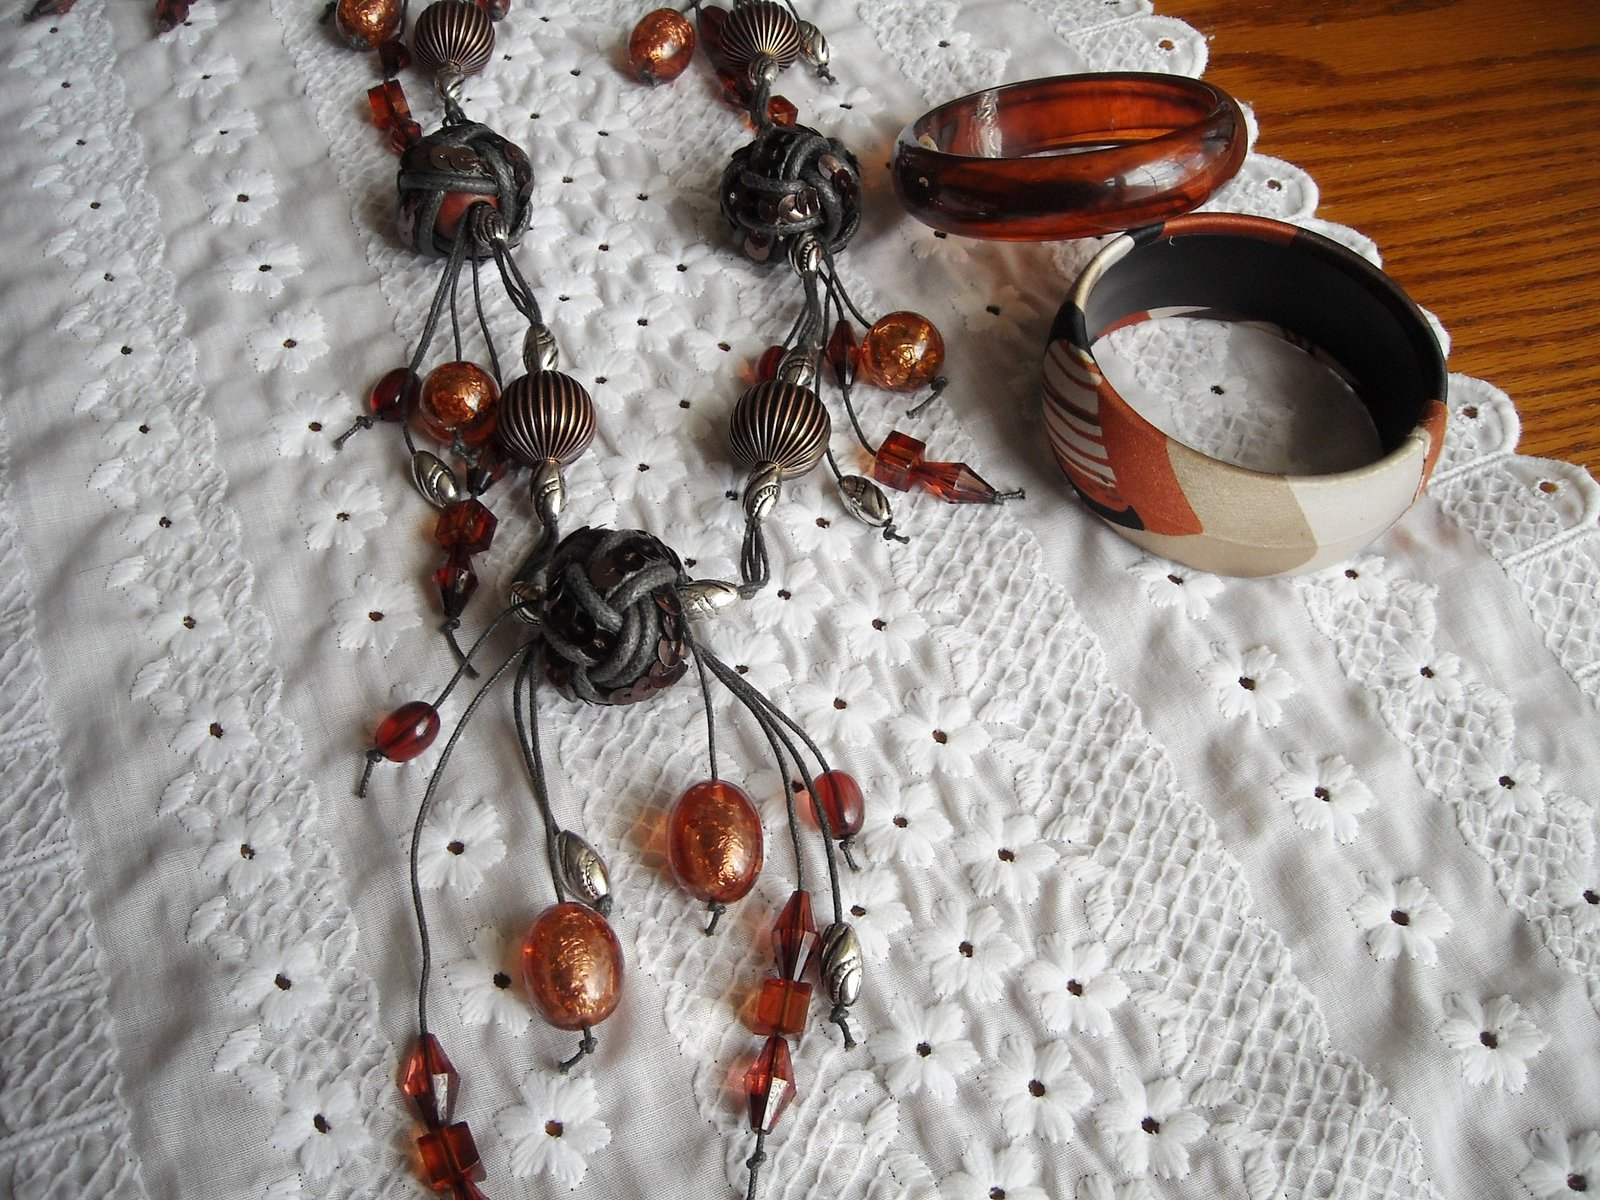 Vintage BOHO Baubles & Beads Necklace Earrings Bracelets Amber Rust Copper